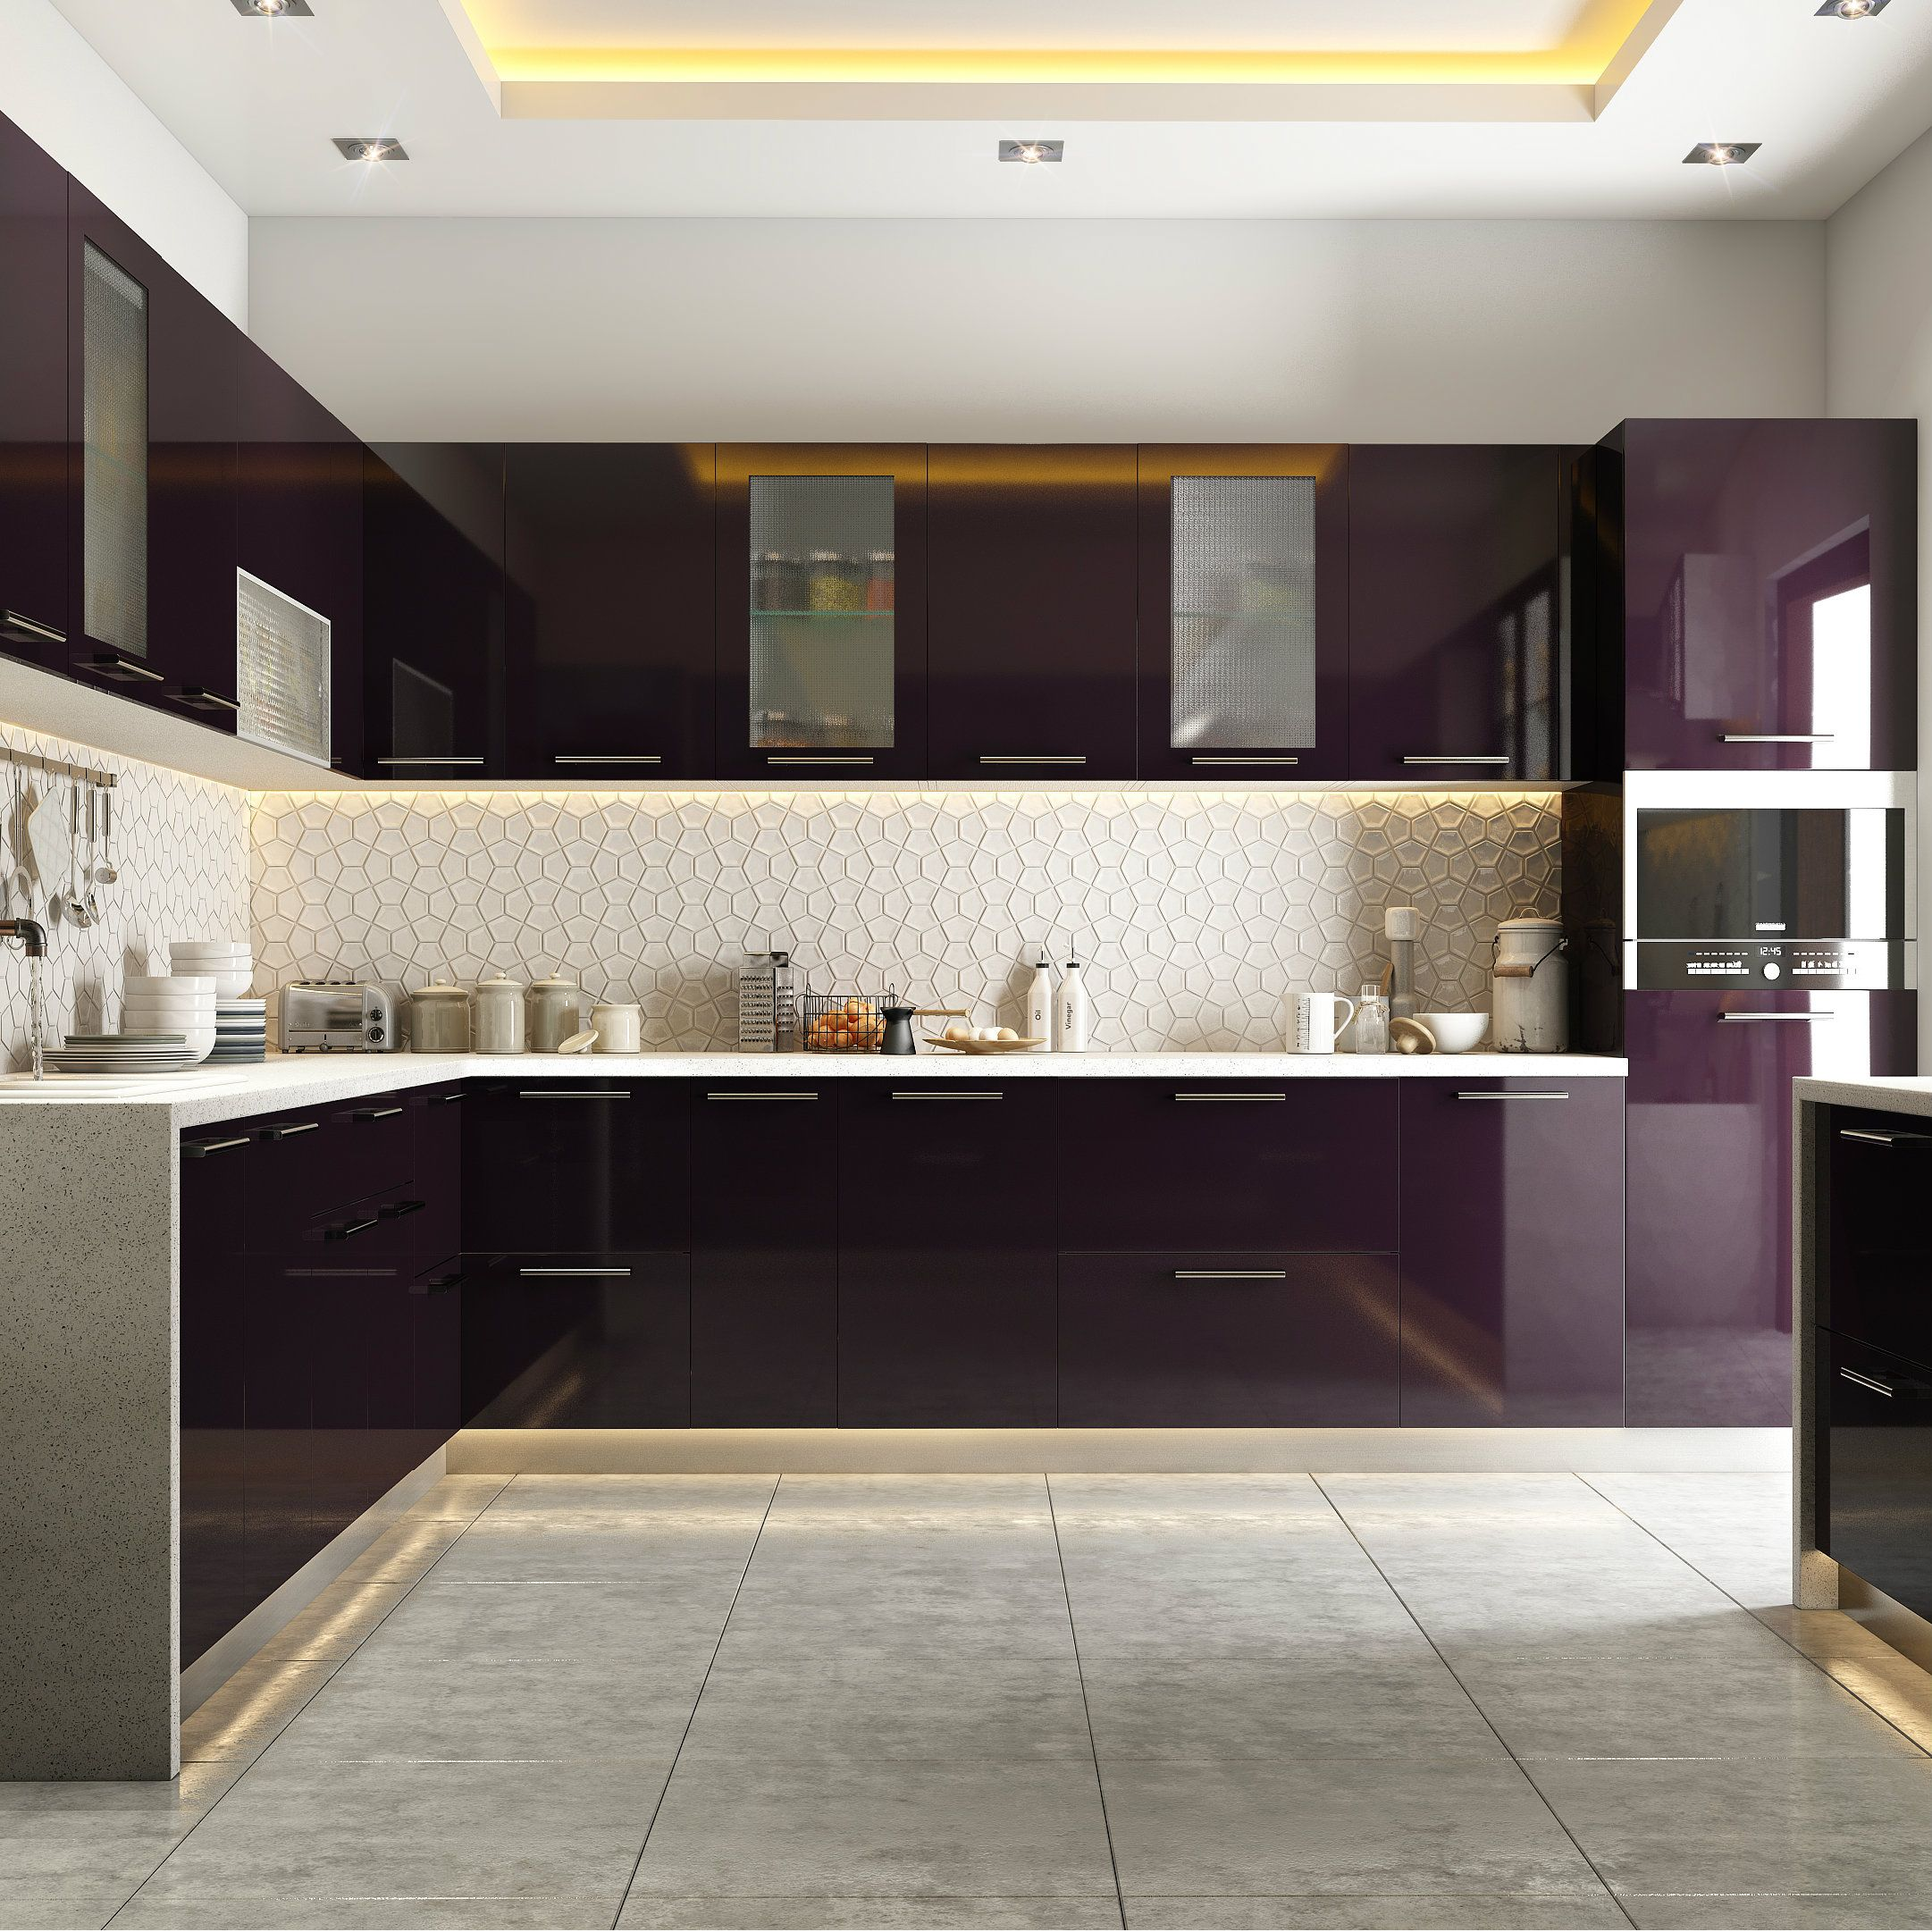 there are kitchen themes that will inspire anyone to get into the kitchen and whip up something on kitchen island ideas india id=61015